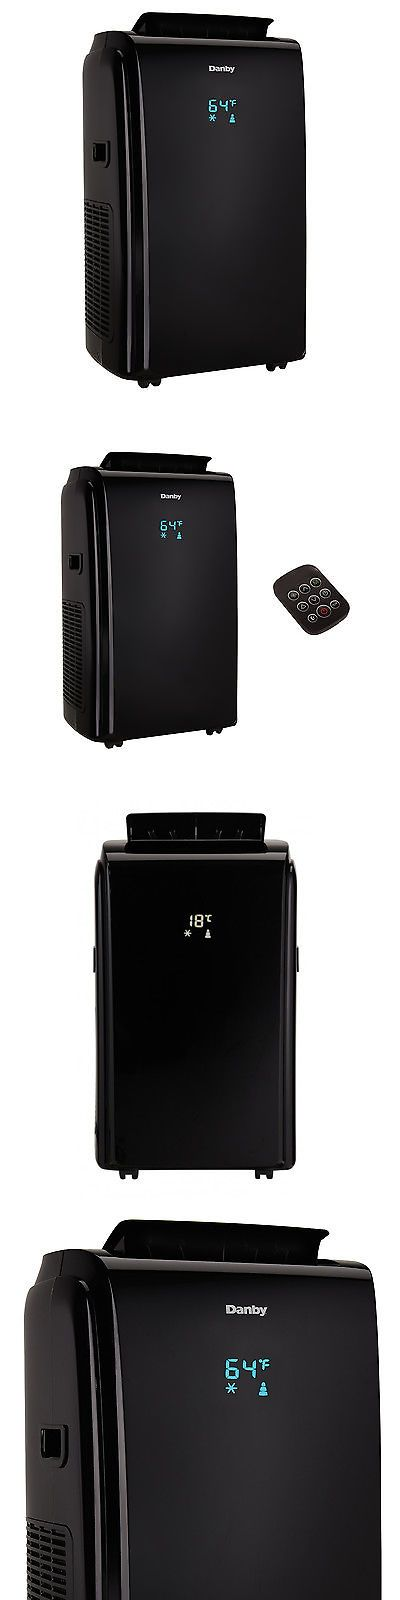 Air Conditioners 69202: Danby 12000 Btu 3-In-1 Portable Air Conditioner And Dehumidifier + Remote, Black -> BUY IT NOW ONLY: $324.99 on eBay!